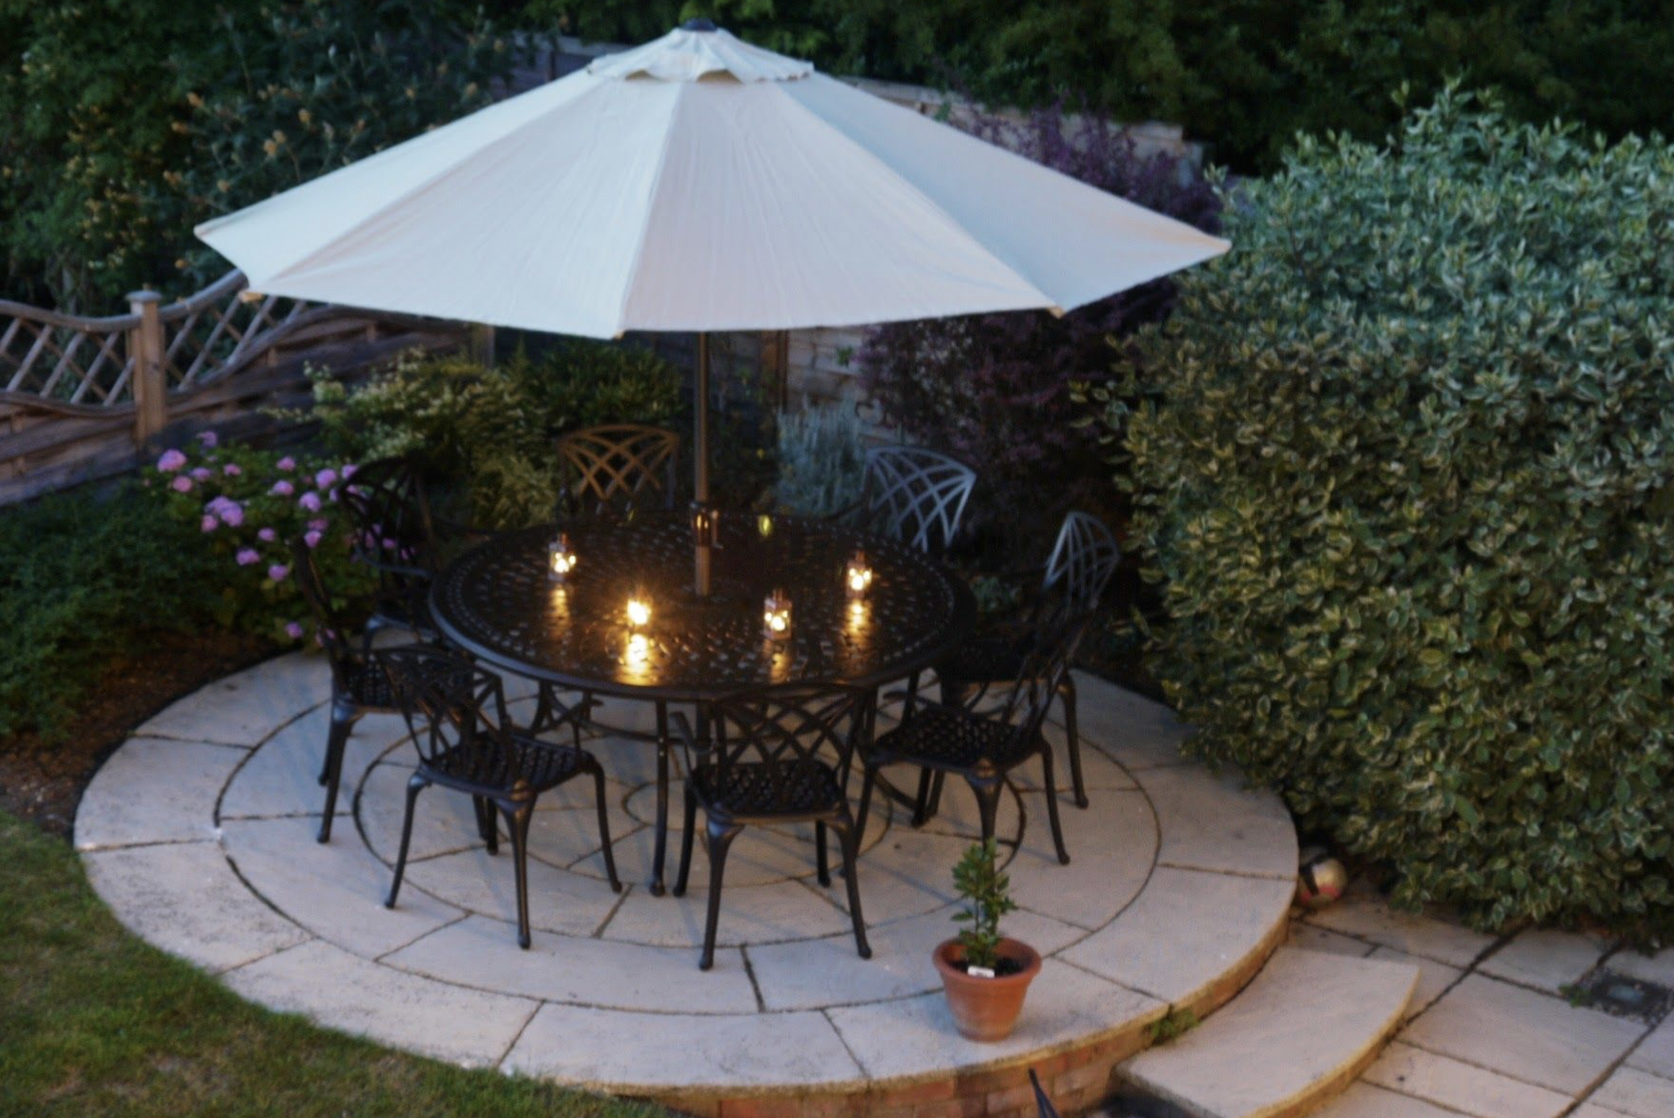 Lazy Susan's Olivia Garden Table looking beautiful with candle light